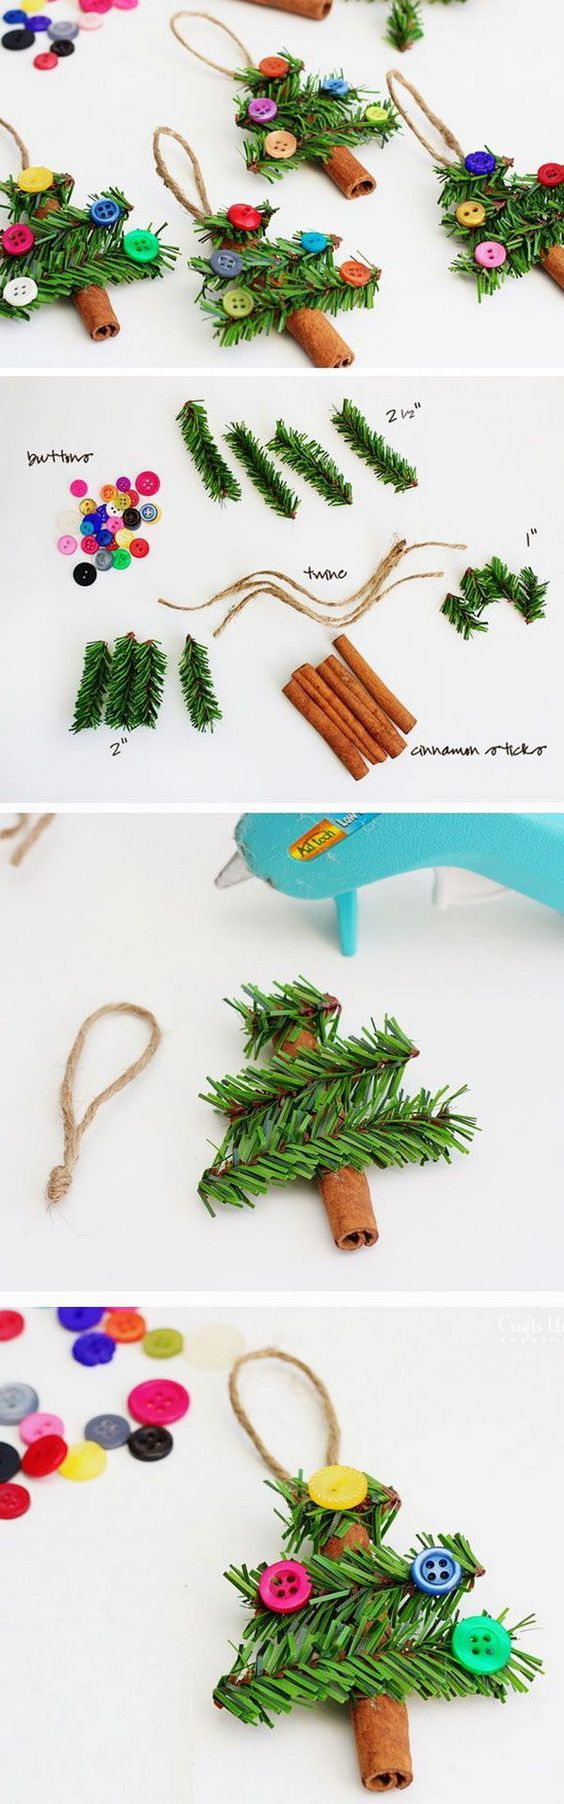 DIY Cinnamon Stick Trees Ornaments .: